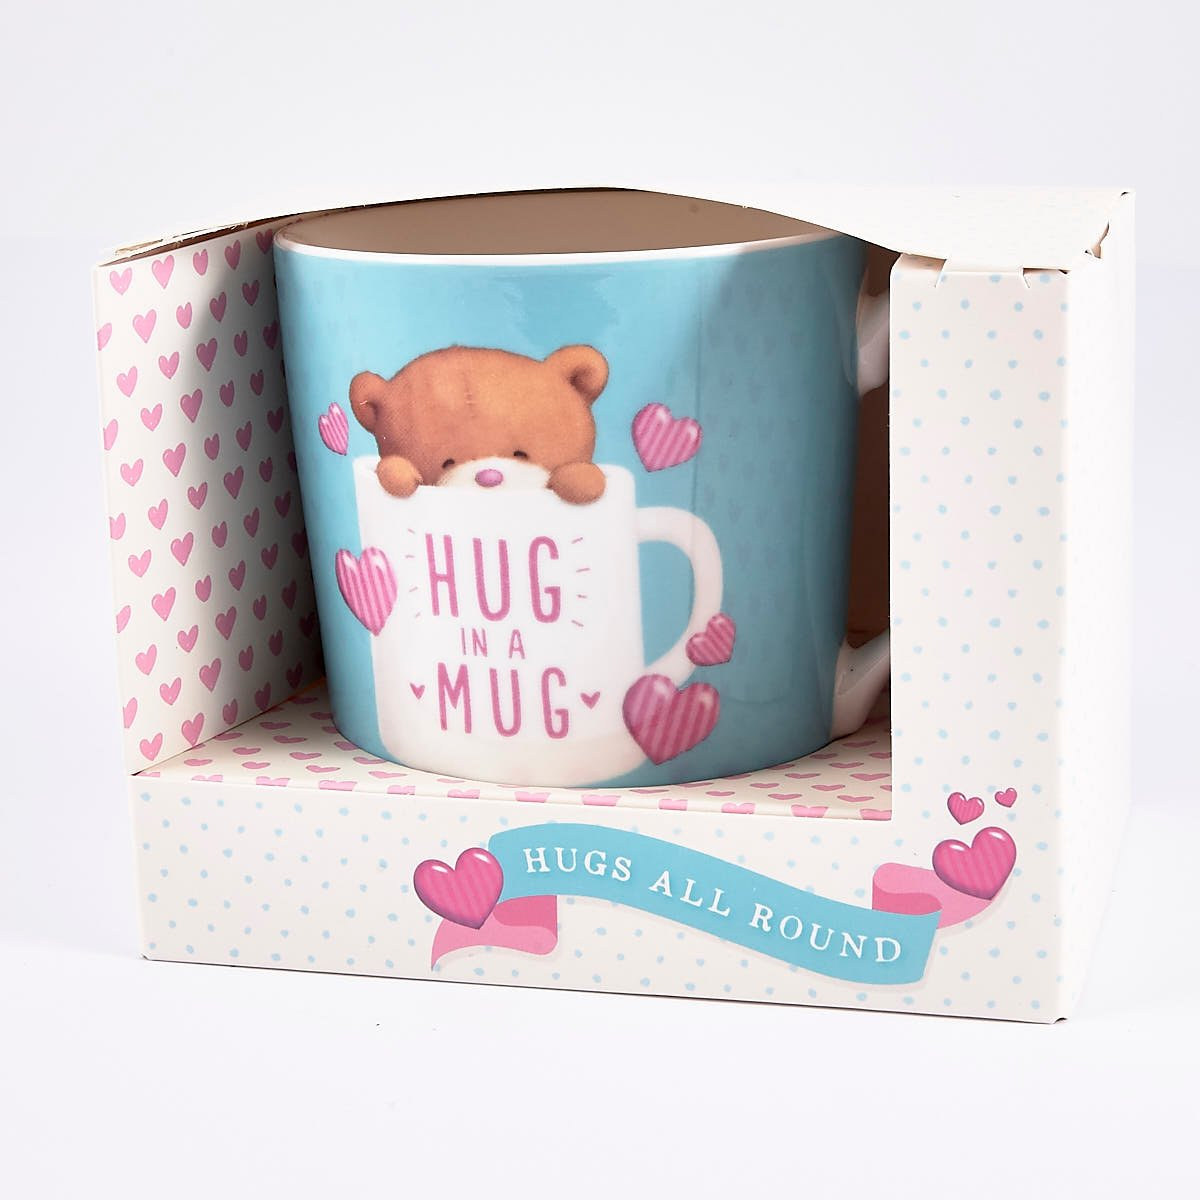 Hug in a Mug' Hugs Mug